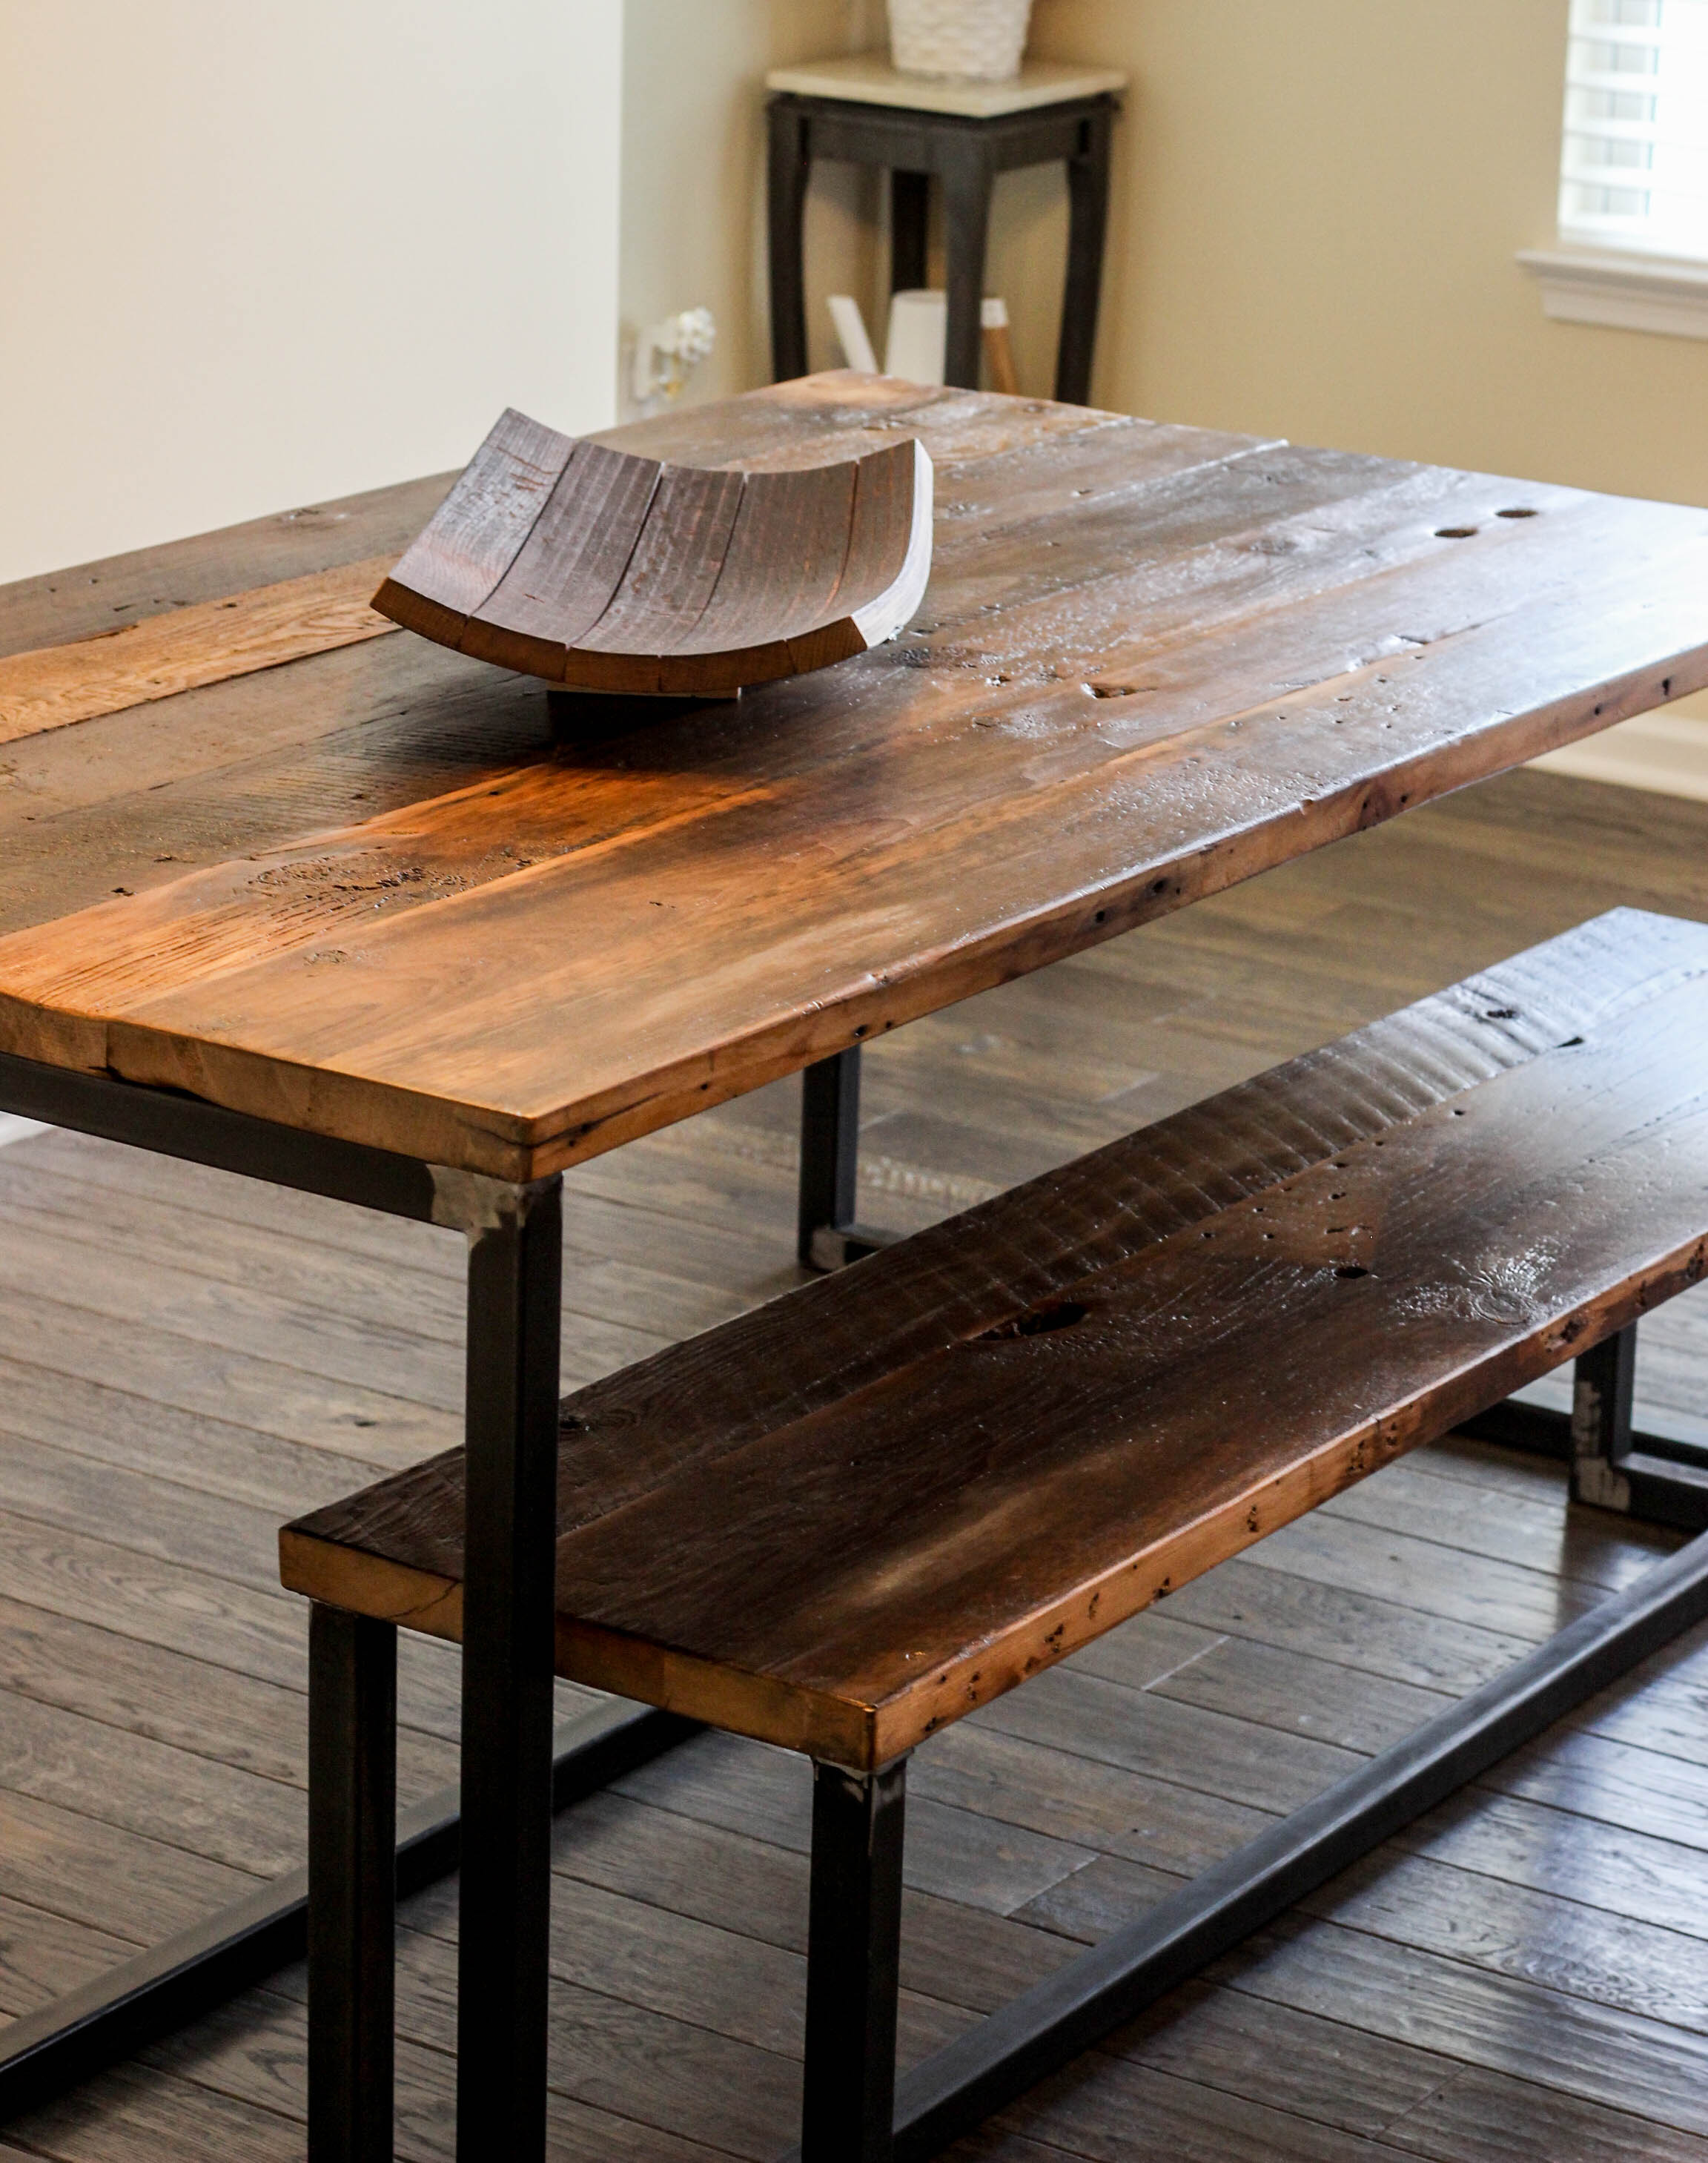 Reclaimed Wood Industrial Dining Table and Bench